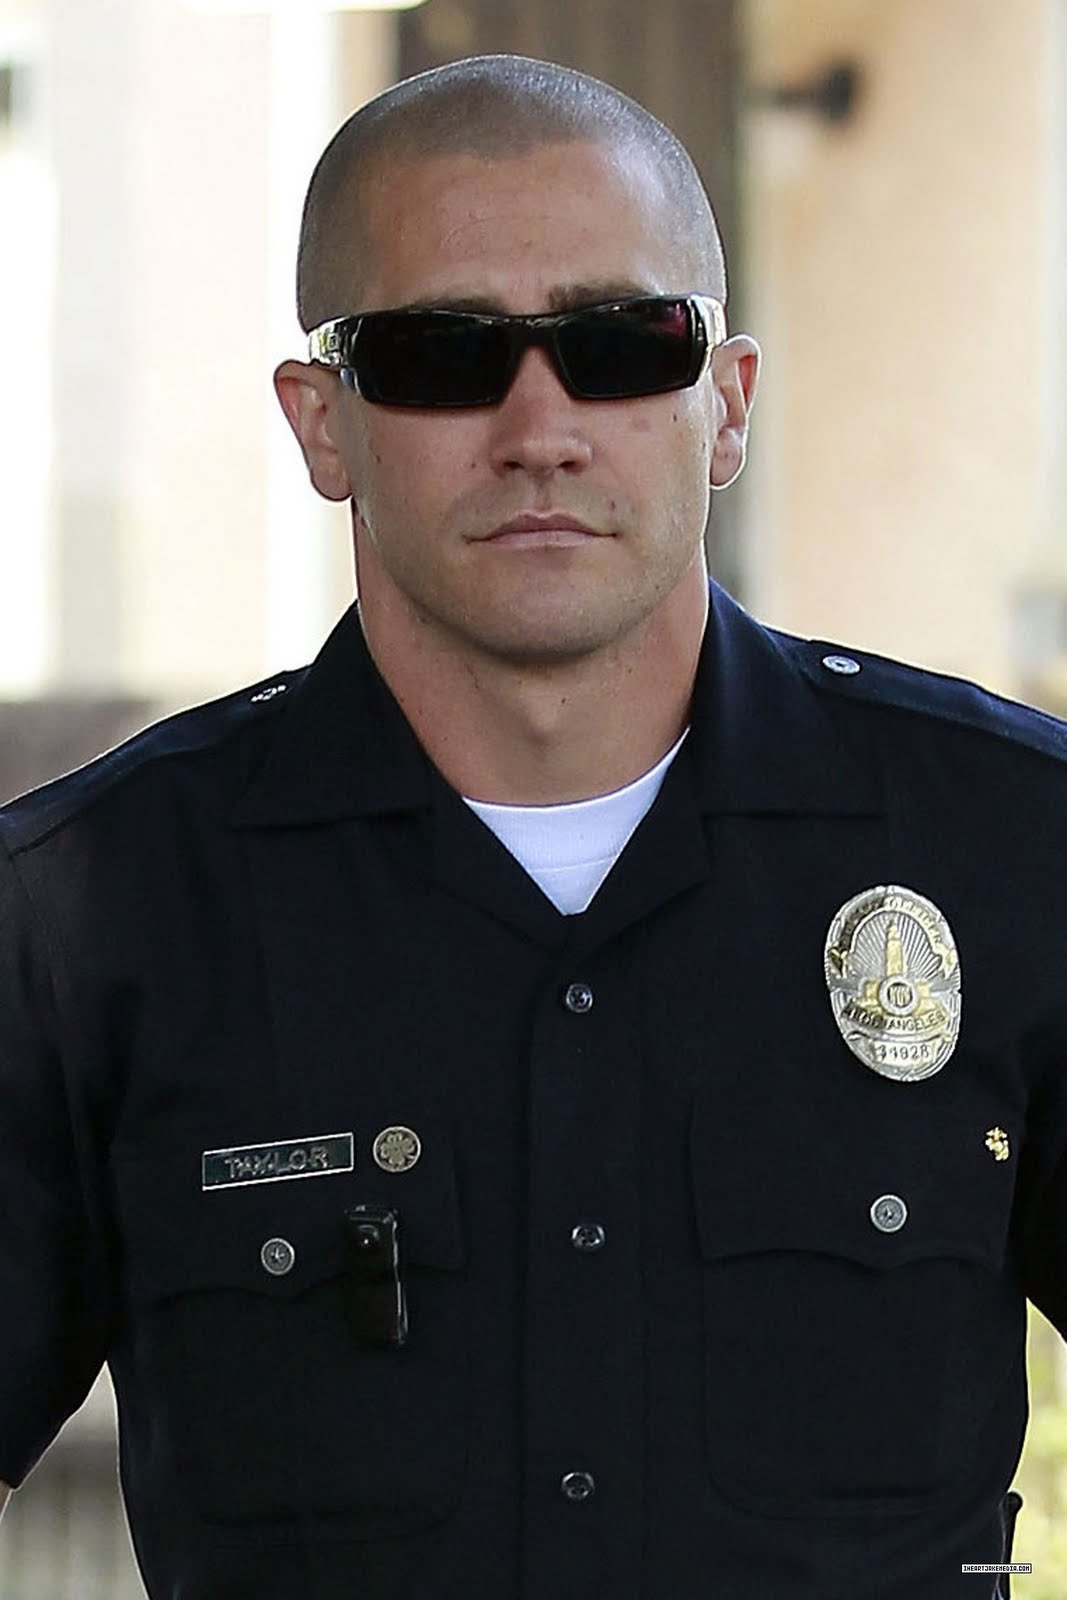 Jake Gyllenhaal in 'End of Watch'